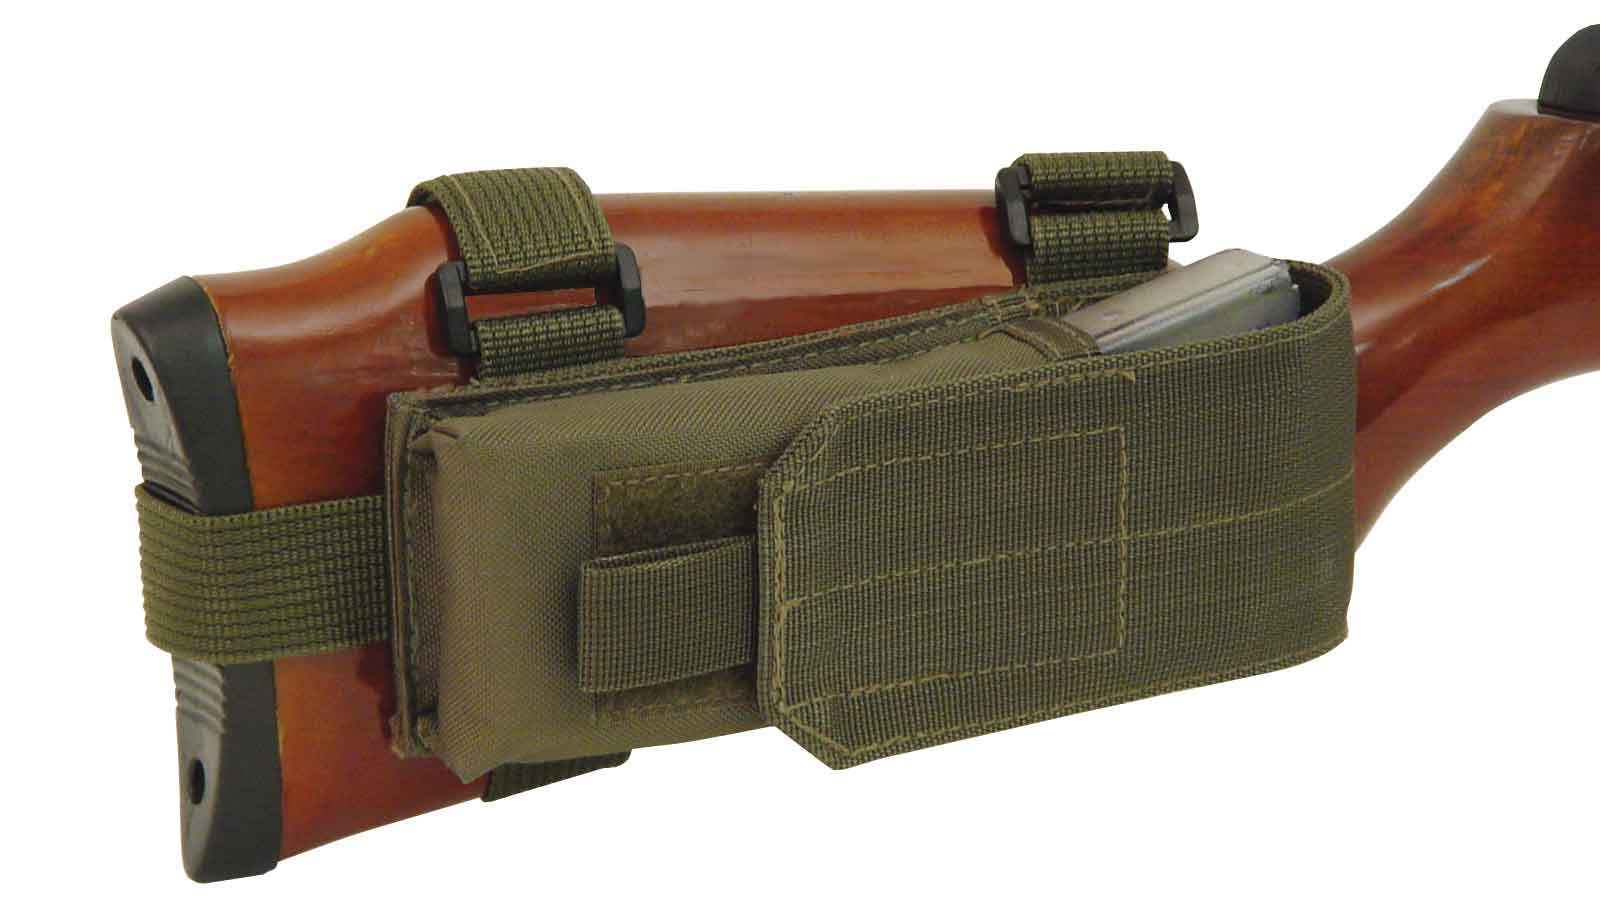 Buttstock Mag Pouch